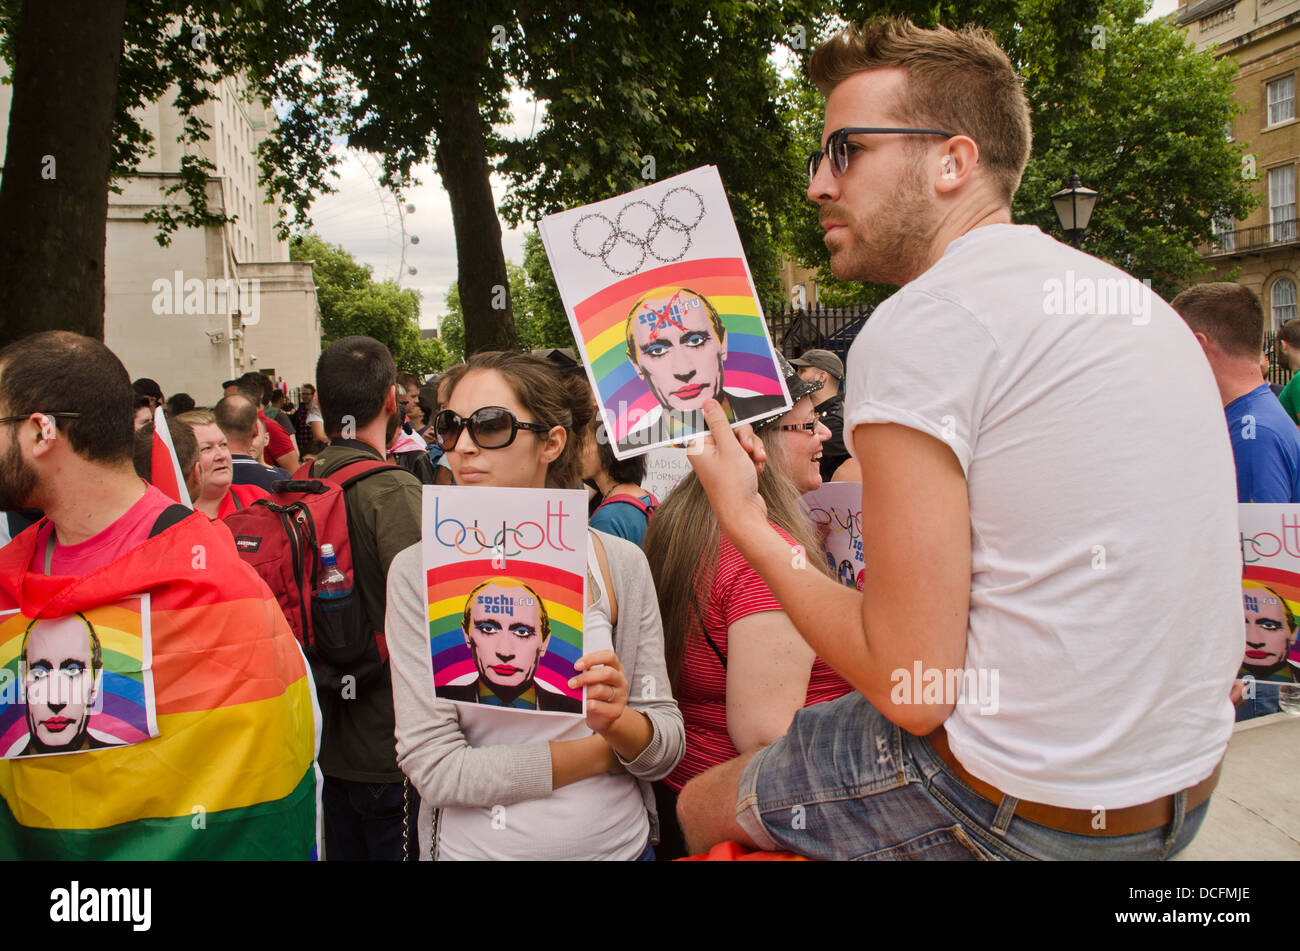 GAY RIGHTS ACTIVISTS IN PROTEST OF OPRESSION OF THE GAY PEOPLE IN RUSSIA - Stock Image